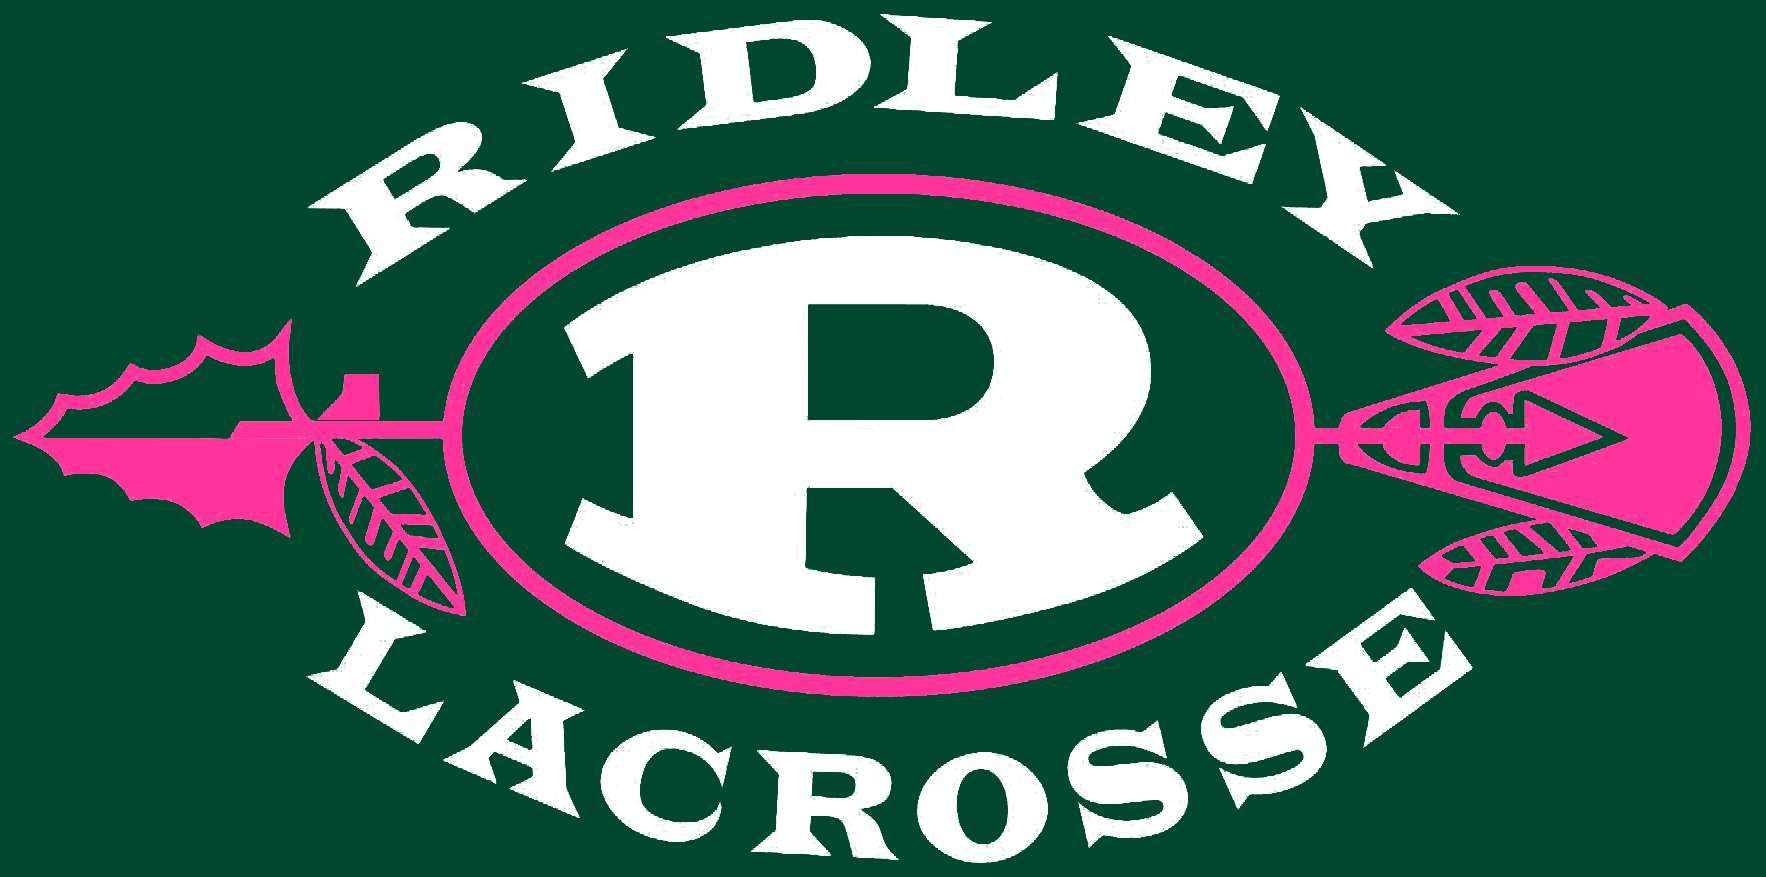 Girls Lax Logo - Green Back - Letters